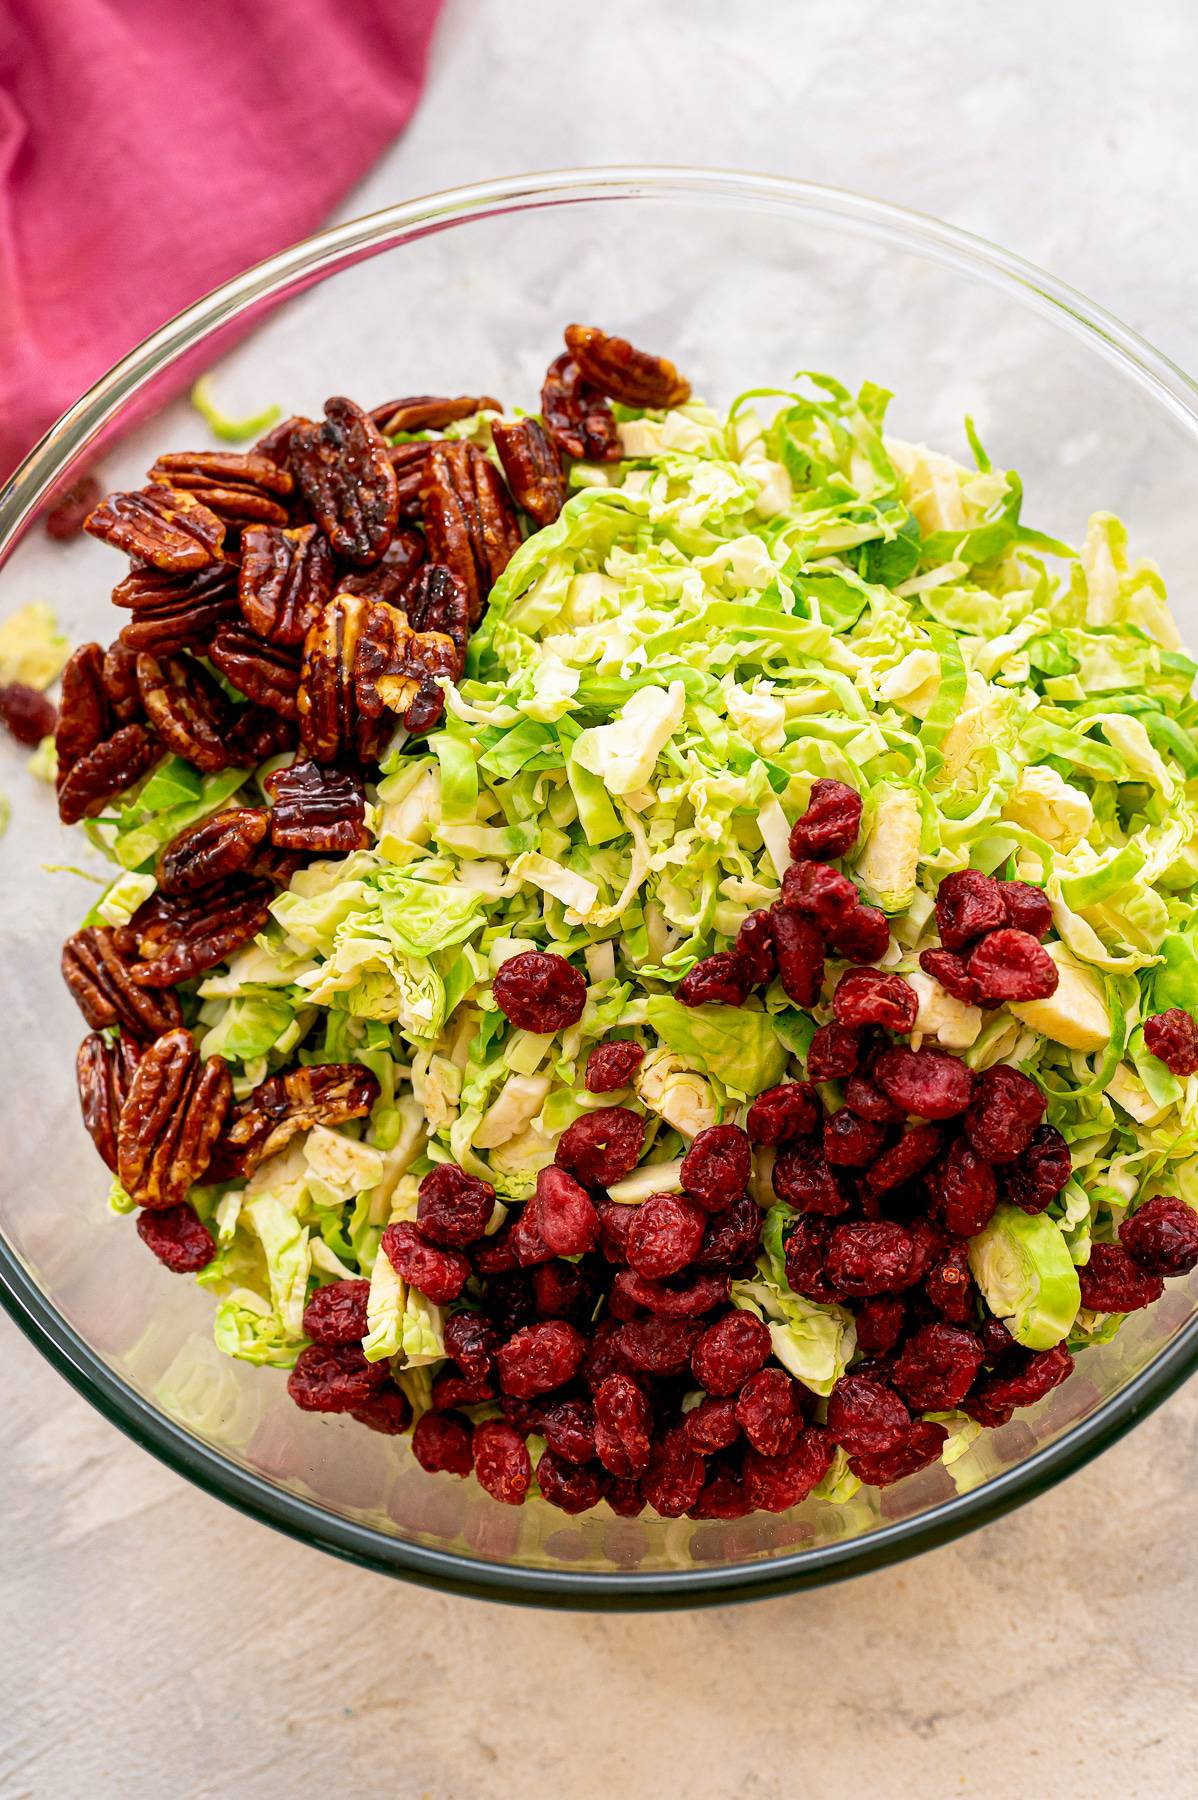 Ingredients for brussel sprouts slaw.